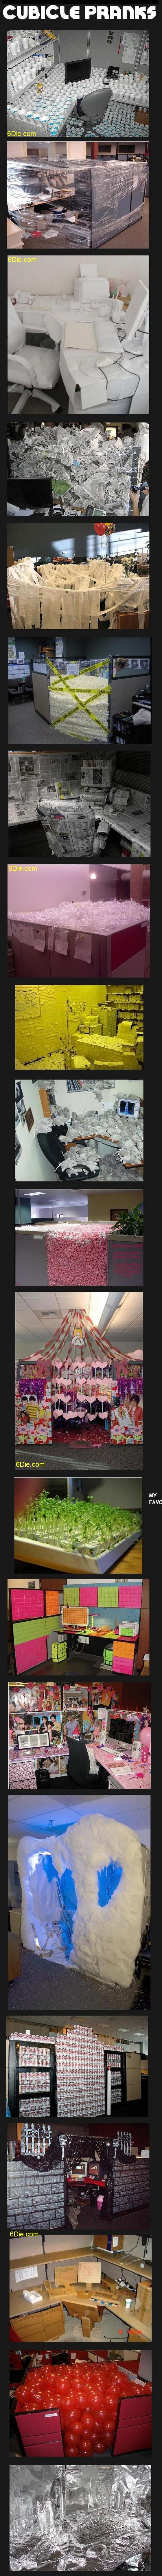 20 best cubicle pranks. The guys at work are gonna hate me!!!